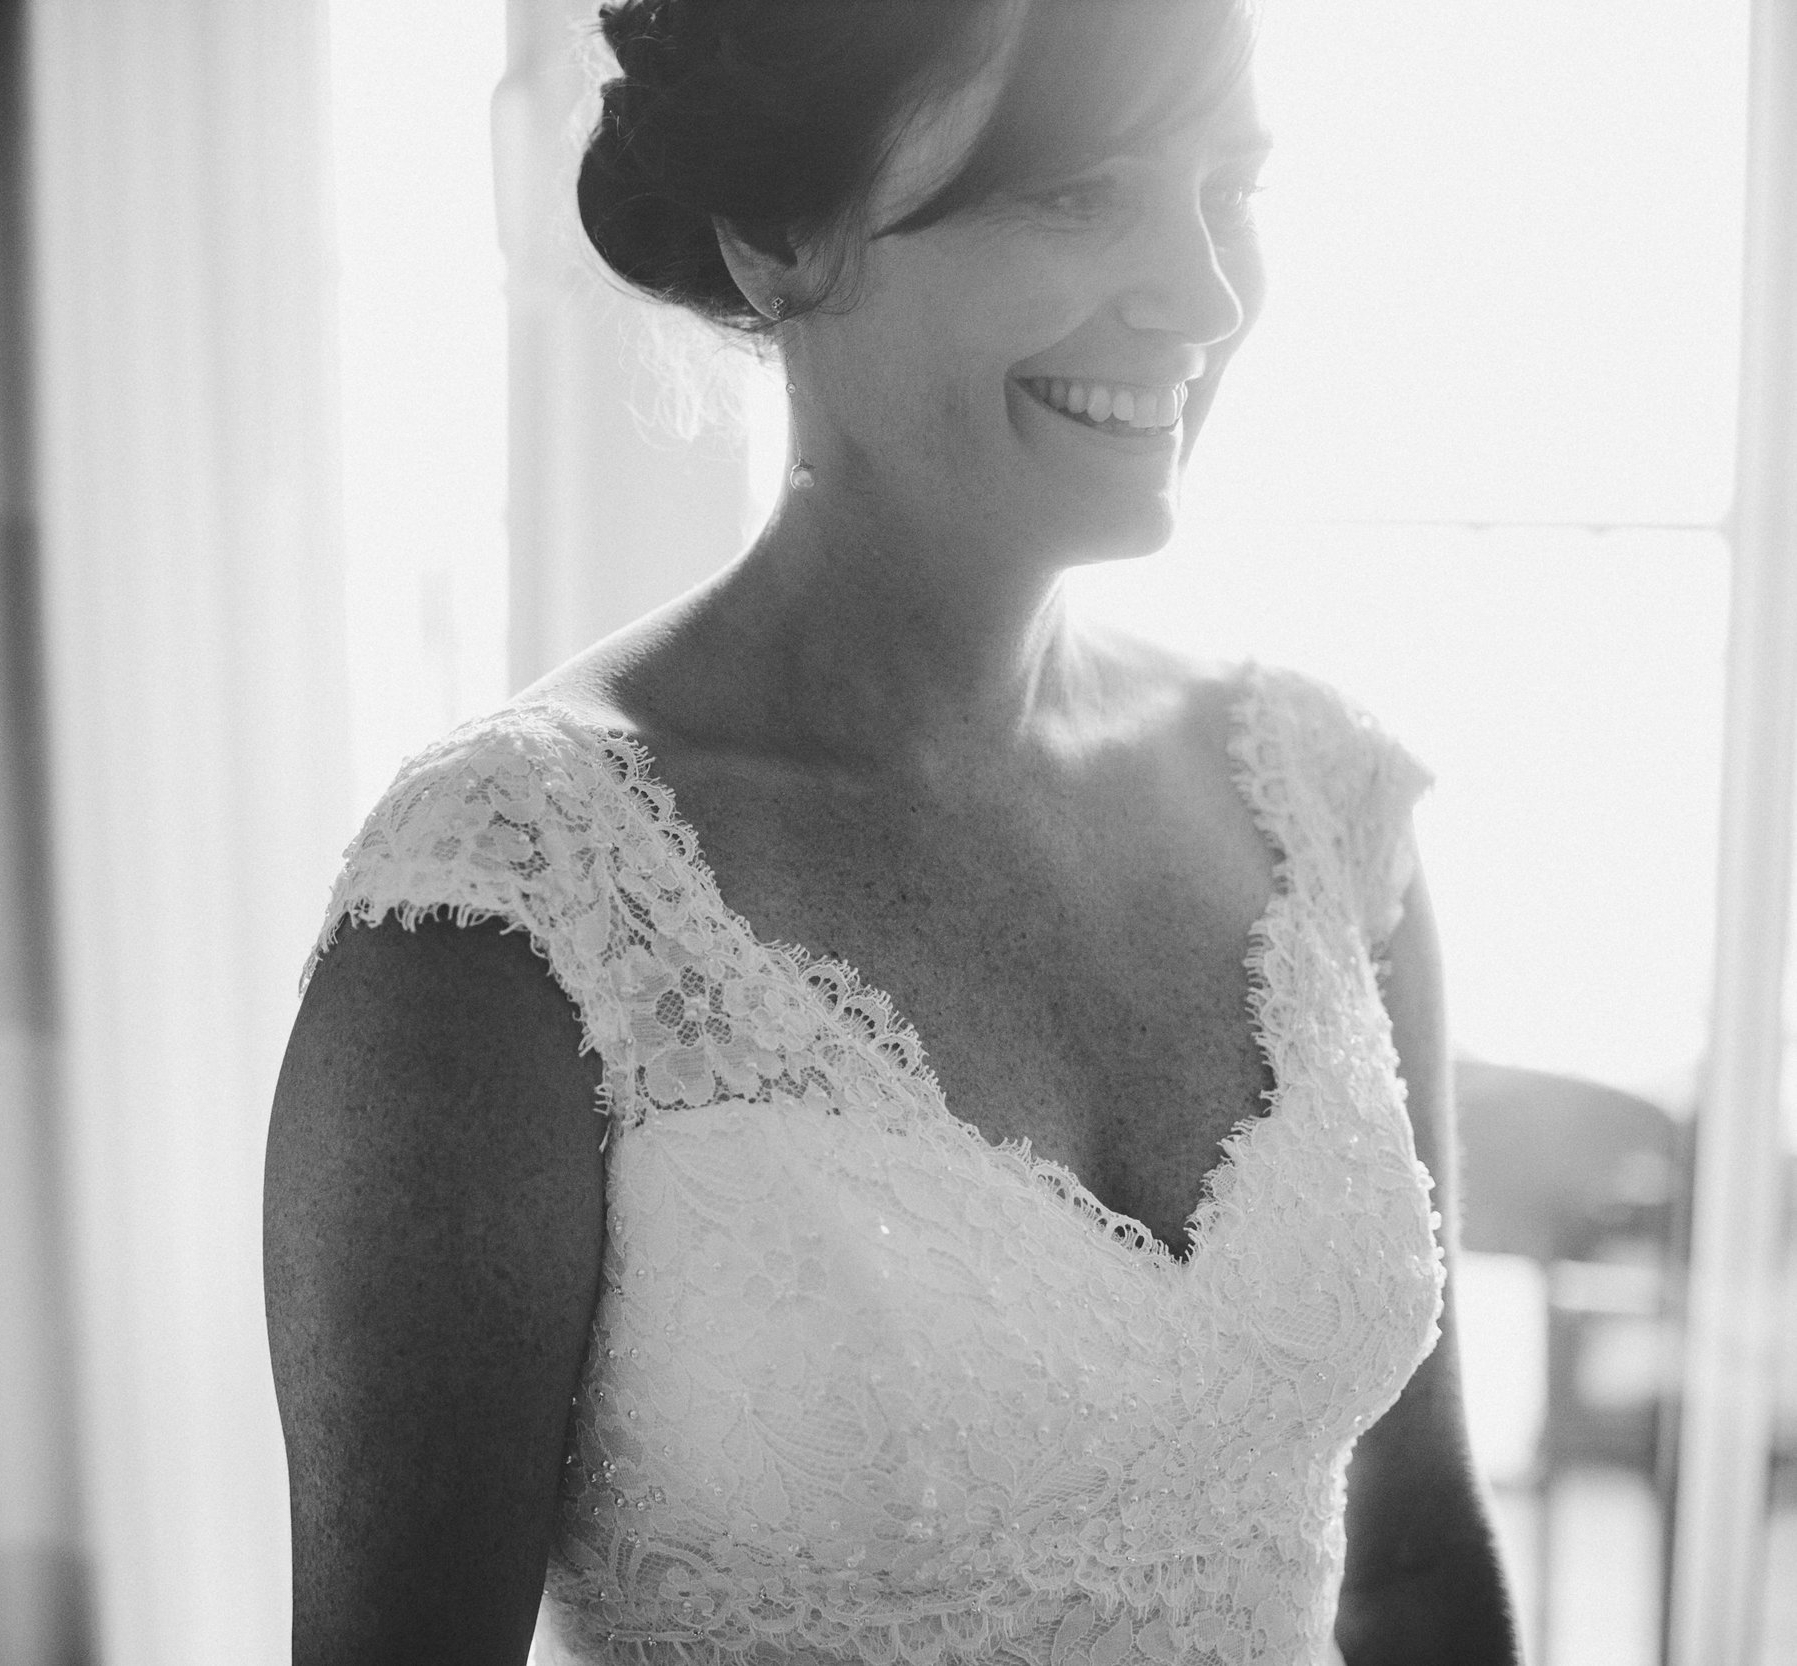 Every aspect of buying my wedding dress at The White Peony exceeded my expectations.Trish offers a personal touch that is rarely found in the retail world, which makes for buying a wedding dress a truly magical experience. ~ Joanna